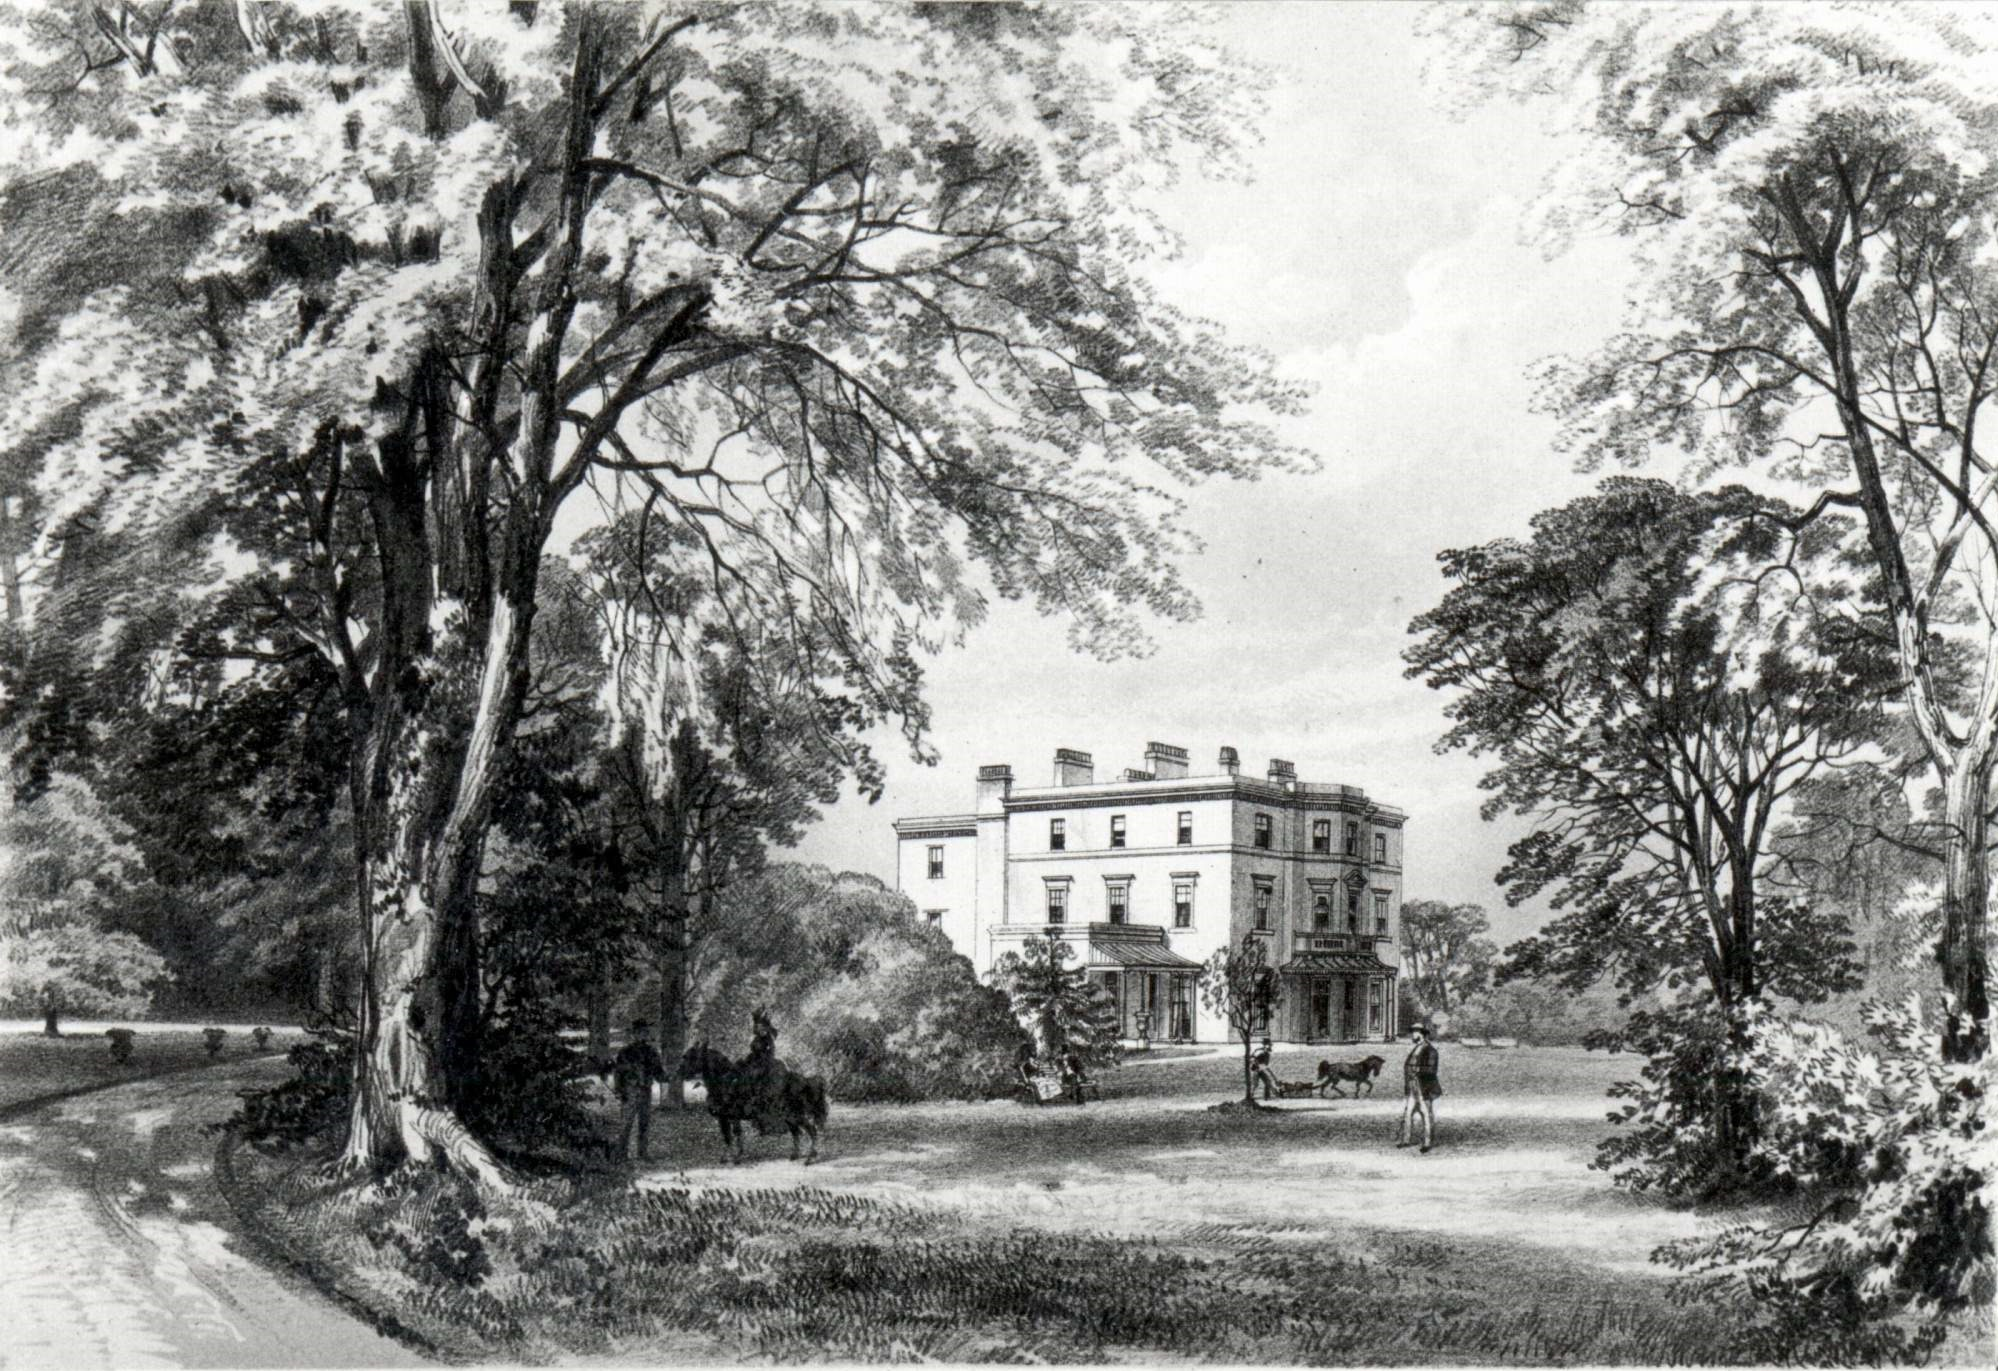 Lincoln House, Thomas Cubitt's house in Clarence Road, Clapham Park (reproduced by permission of London Borough of Lambeth, Archives Department)